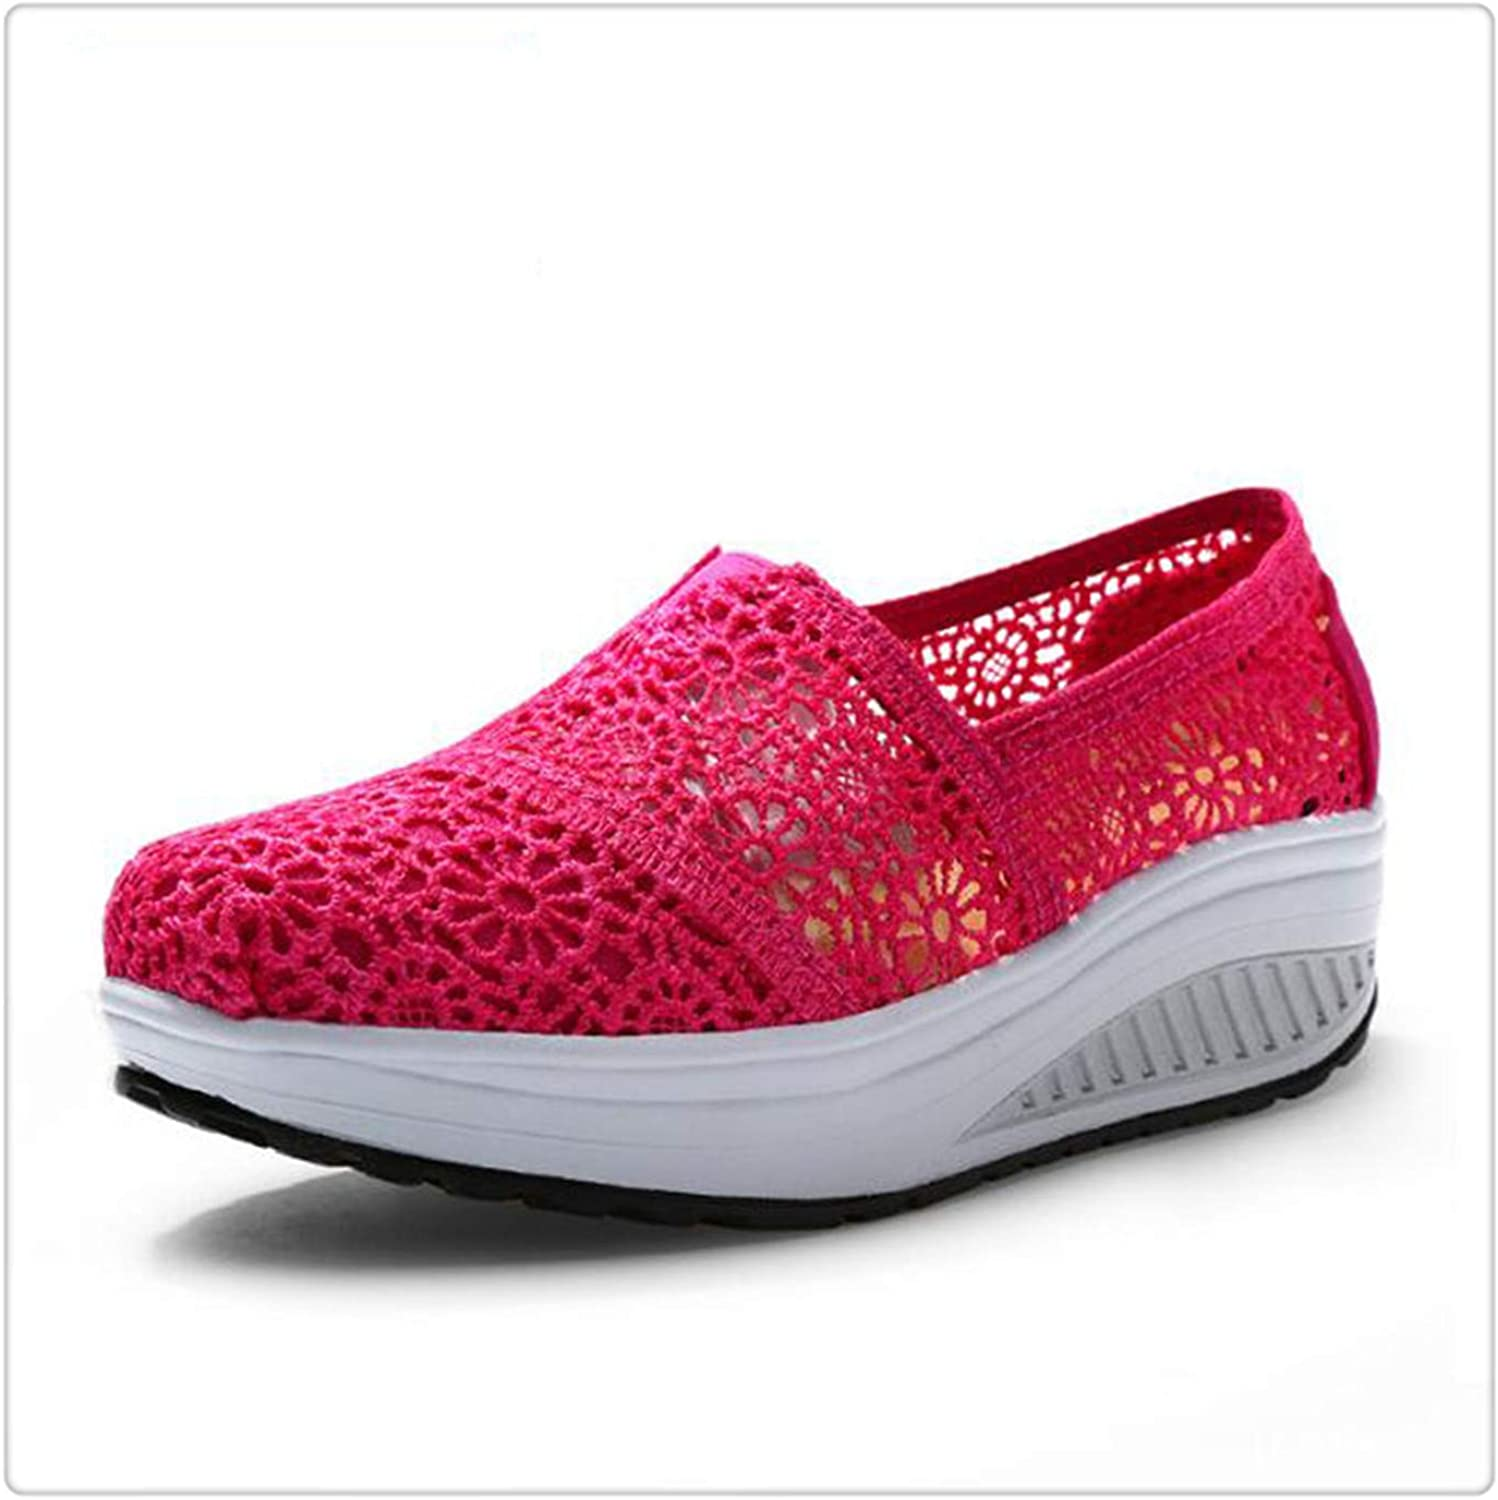 HANGGE& Women Casual shoes 2017 Spring Summer Breathable lace Canvas shoes Women Platform Slip-on Solid Wedges shoes pink red 6.5